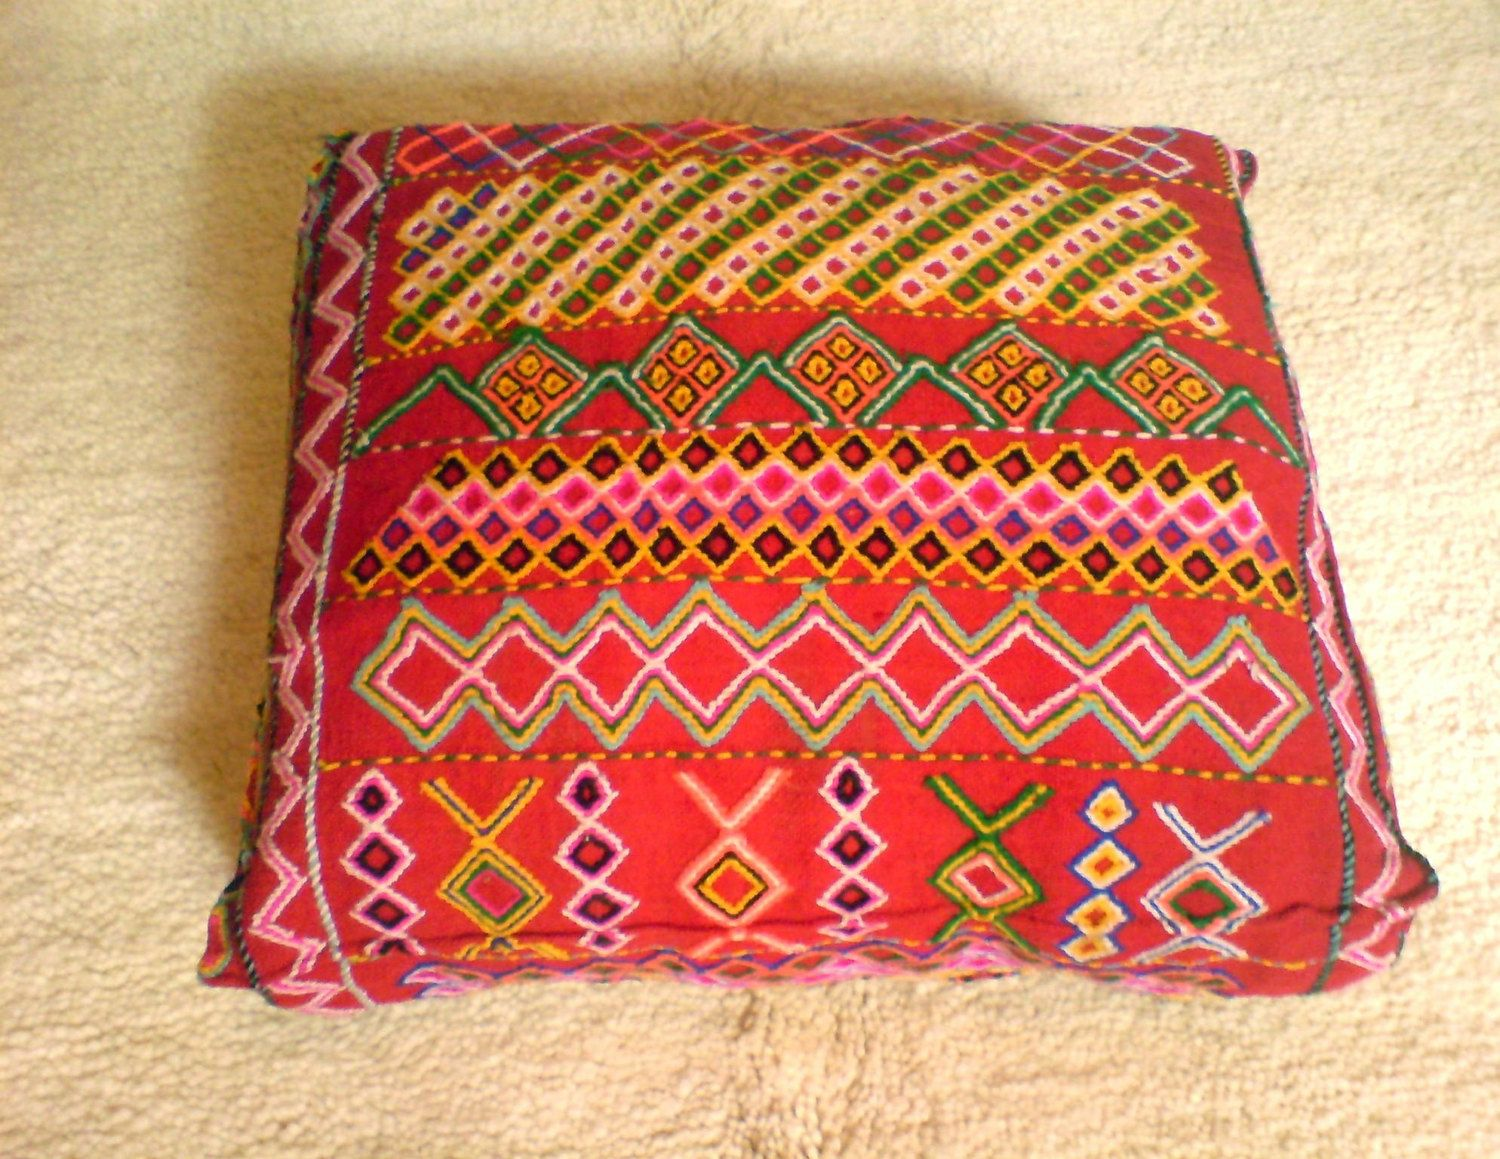 of stumbling semikah after interior you veronica textiles pillows s pillow so baskets designer hamlet can how rugs and collection upon see moroccan floor vintage pin